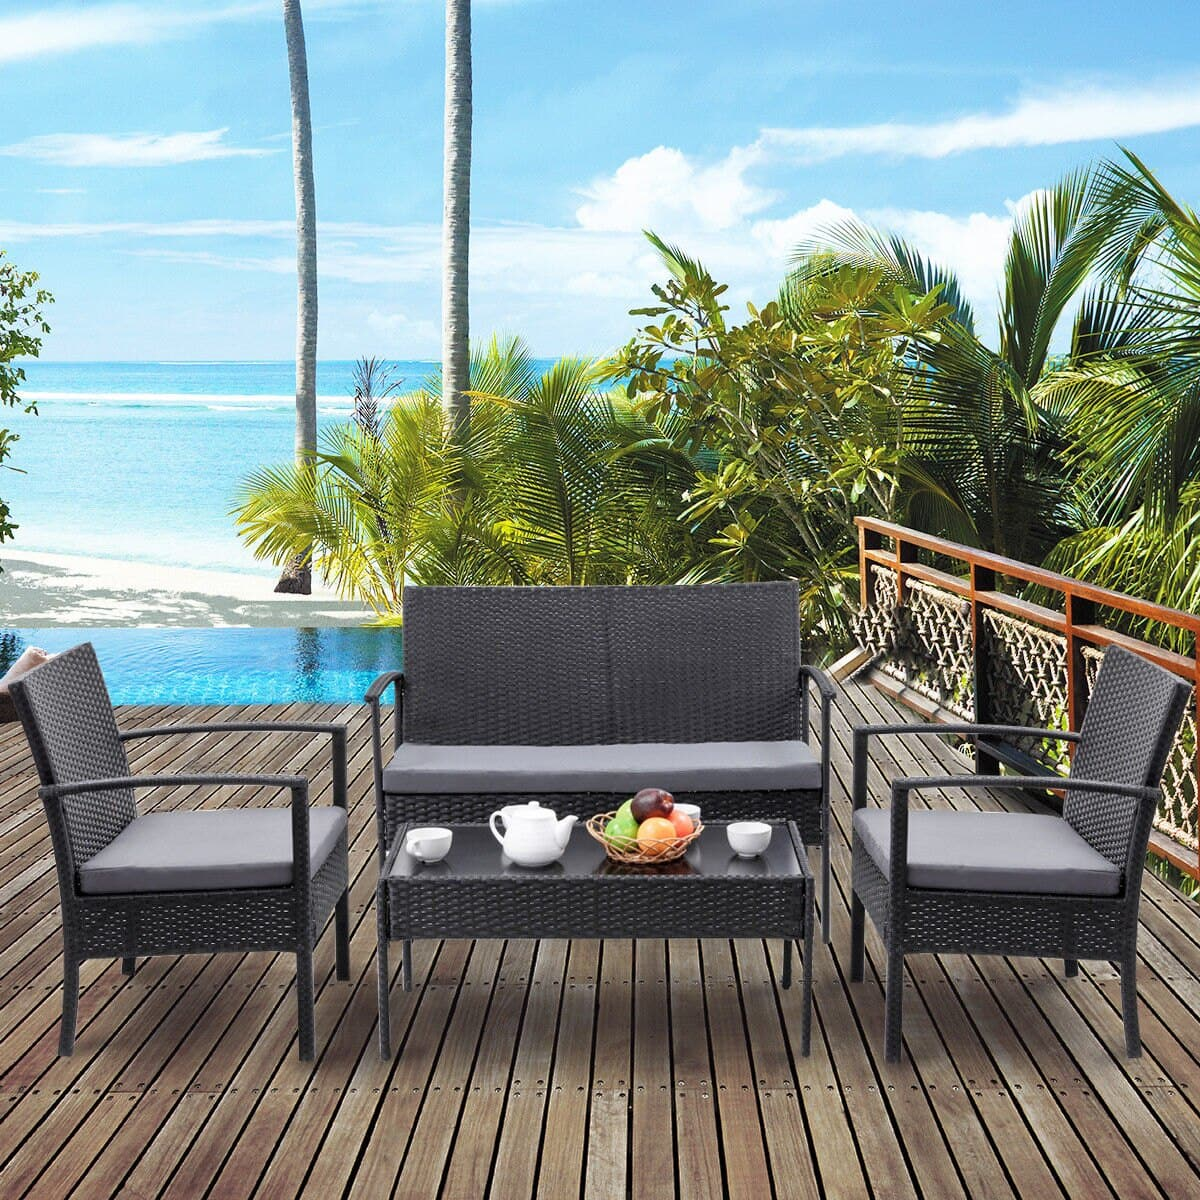 Deal Image & 4-Piece Costway Outdoor Patio Furniture Set - Slickdeals.net